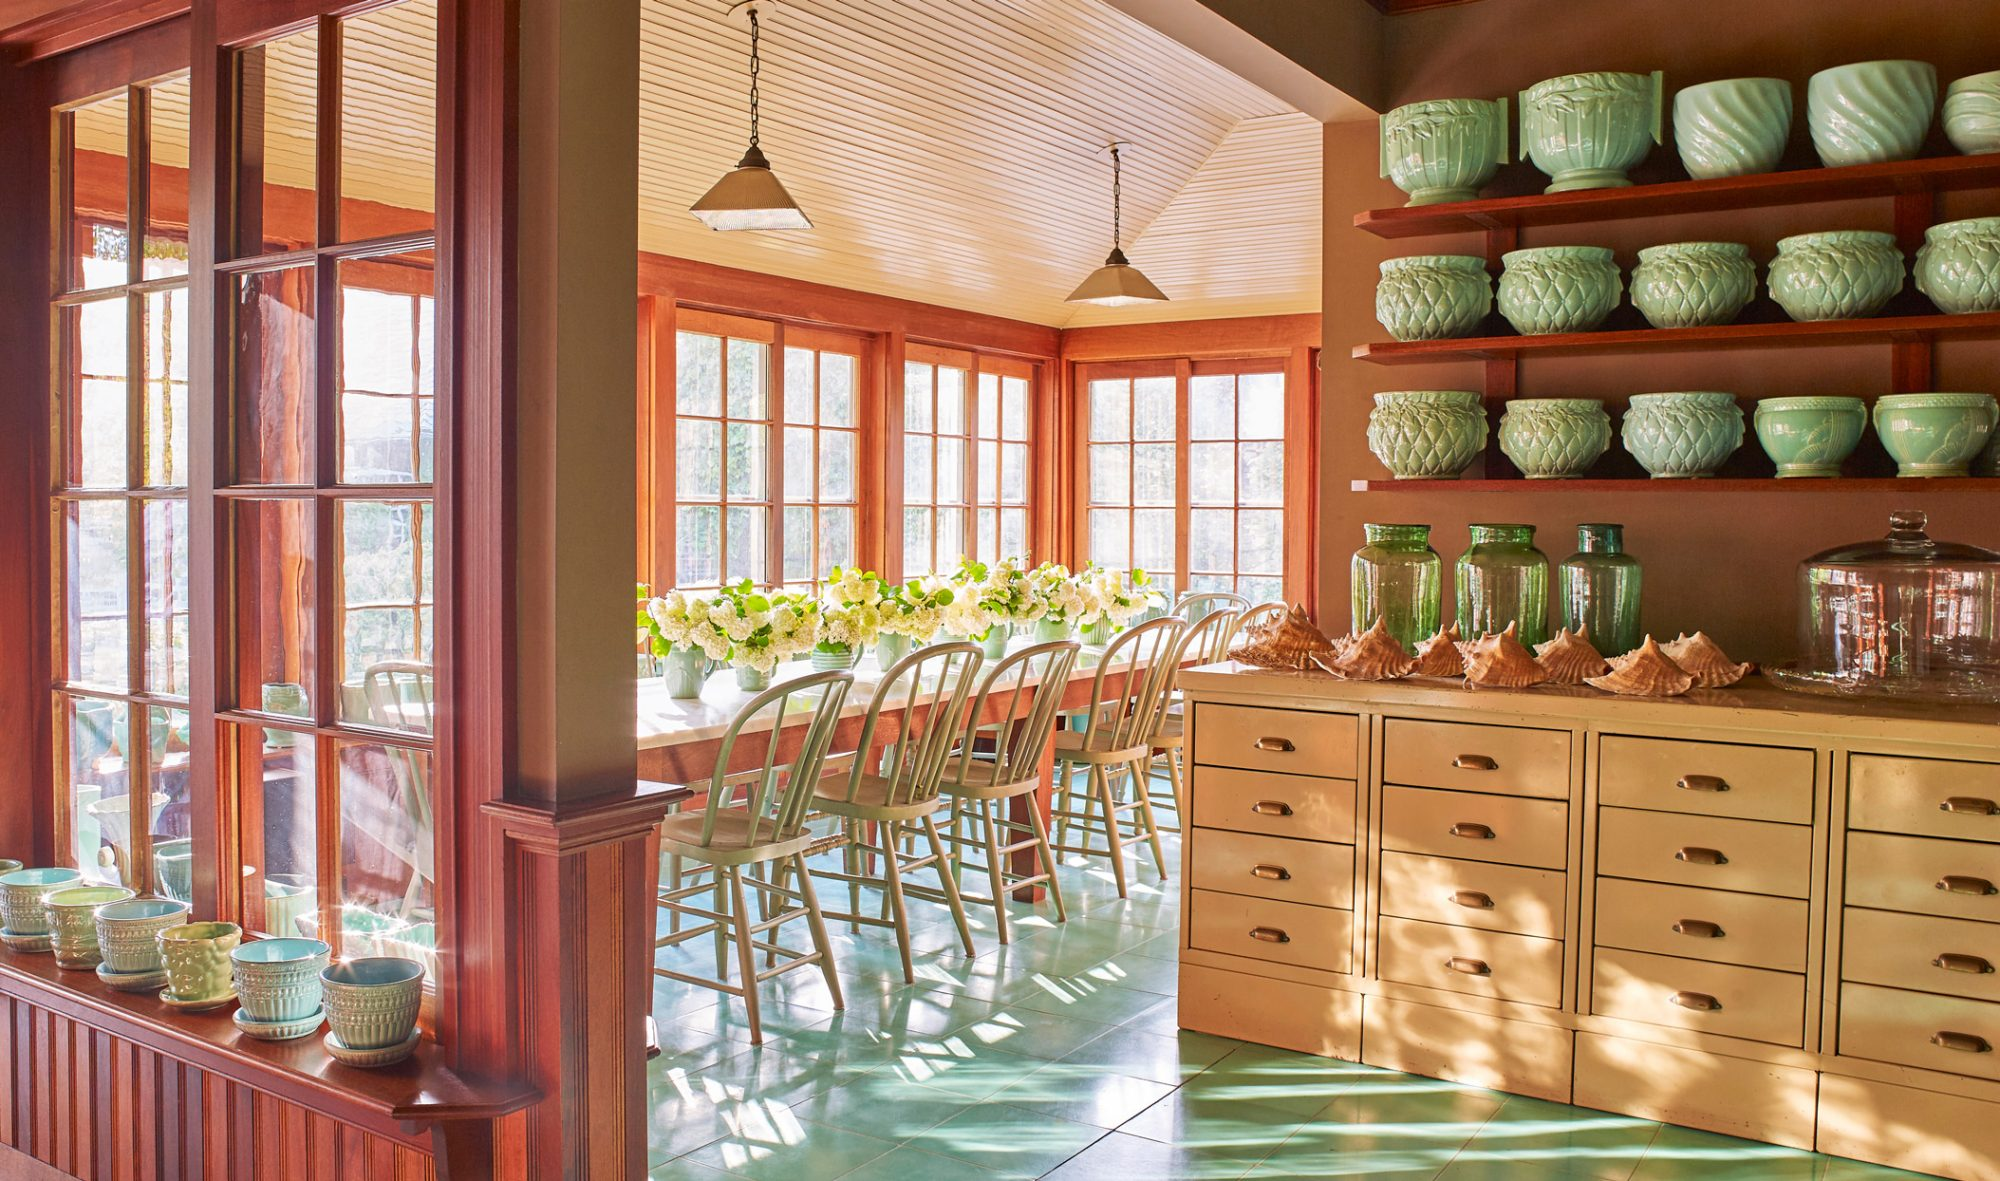 open porch dining area with teal-blue flooring